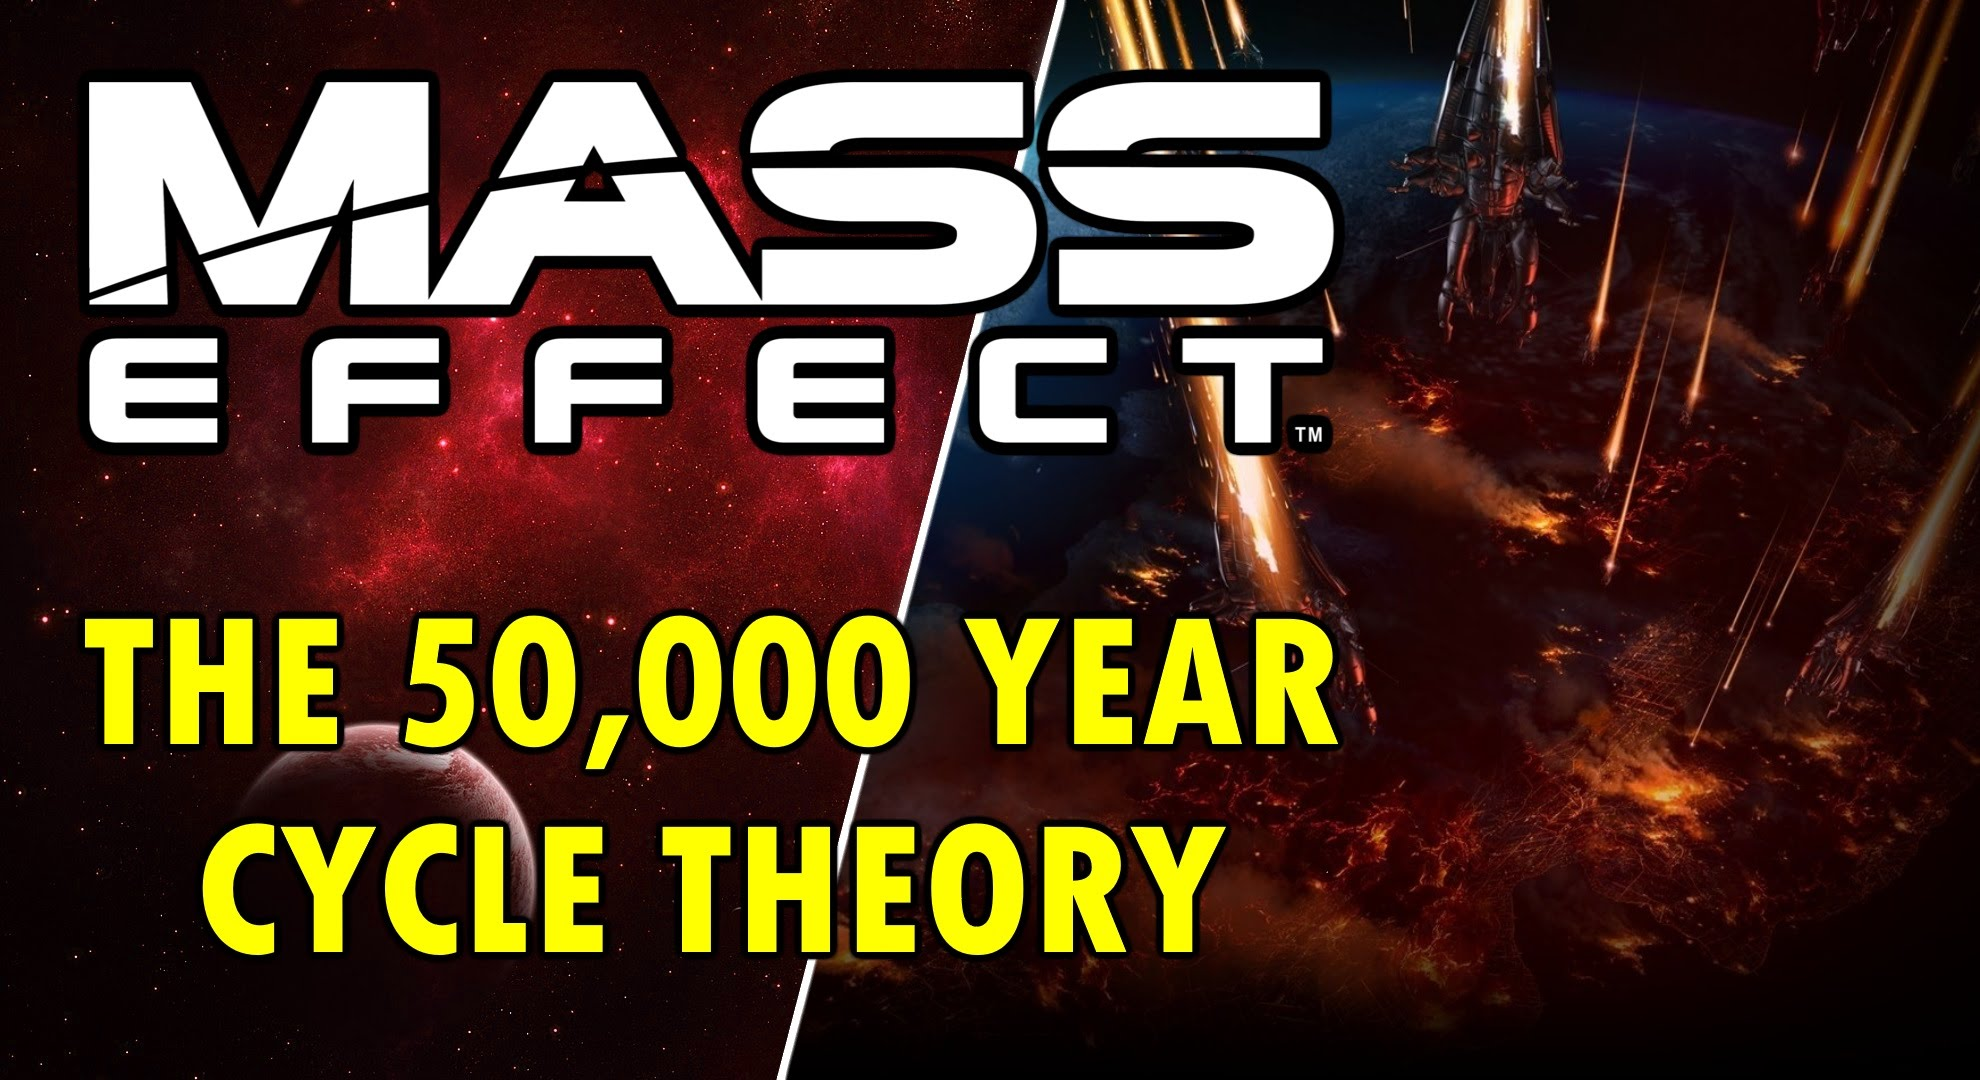 Mass Effect Andromeda - The 50,000 Year Cycle Theory